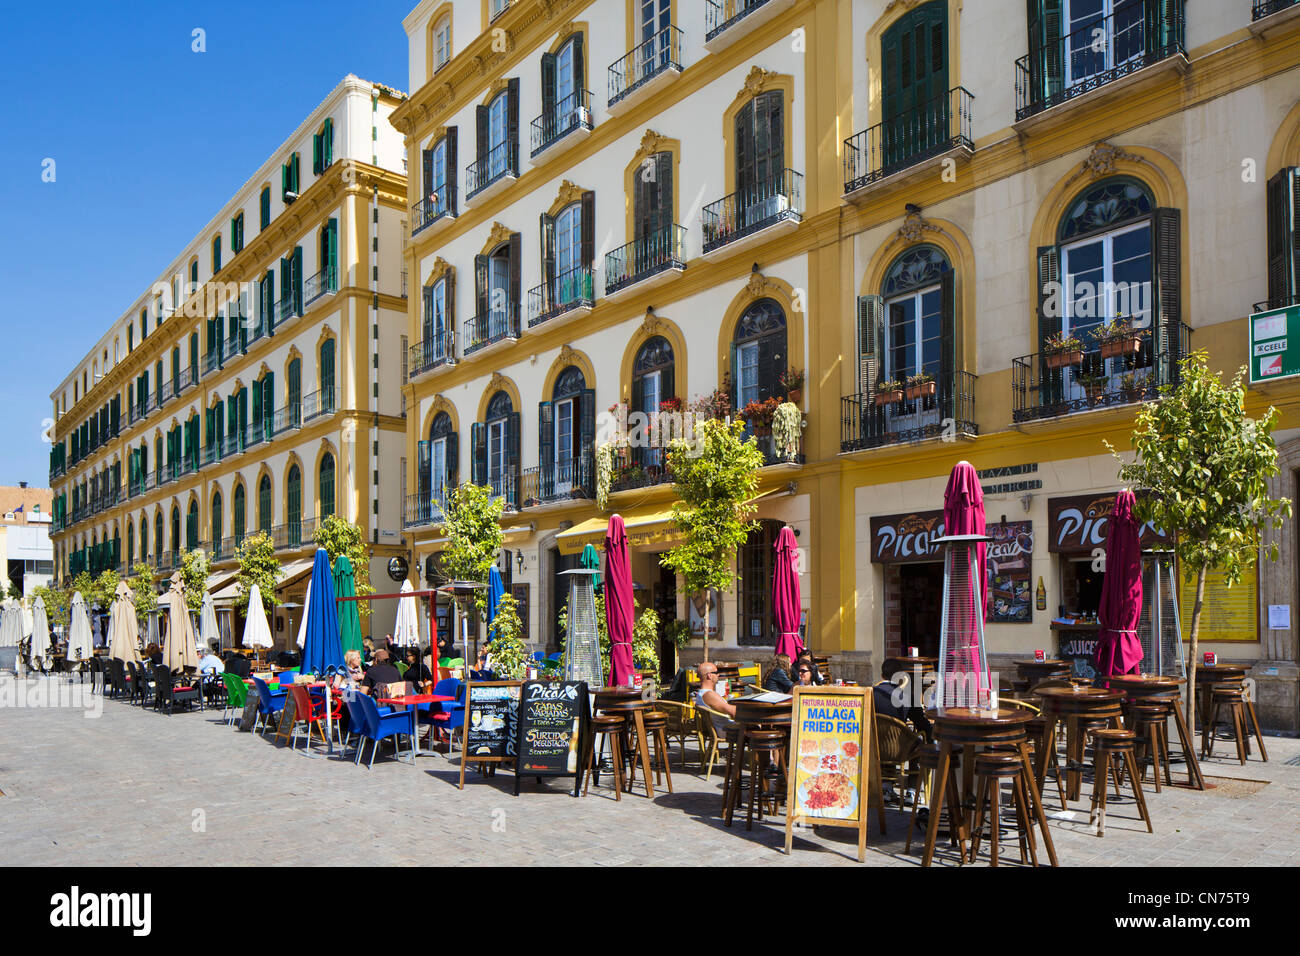 Cafes on Plaza de la Merced looking towards Picasso's birthplace (Casa Natal de Picasso), Malaga, Andalucia, - Stock Image